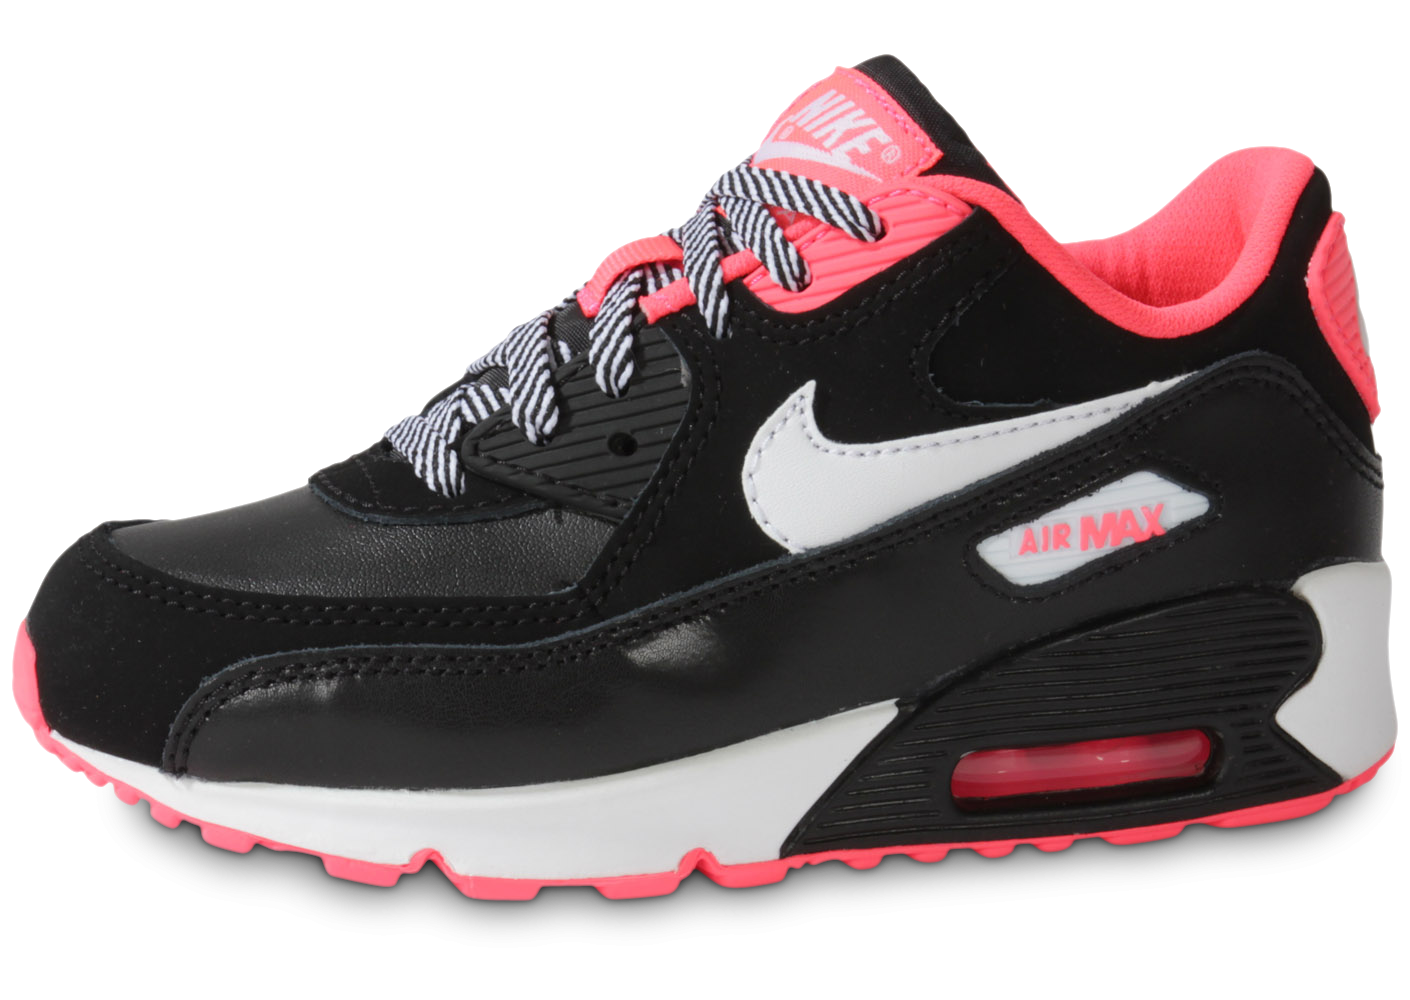 100% Authentique air max femme rose noir et blanc Outlet en